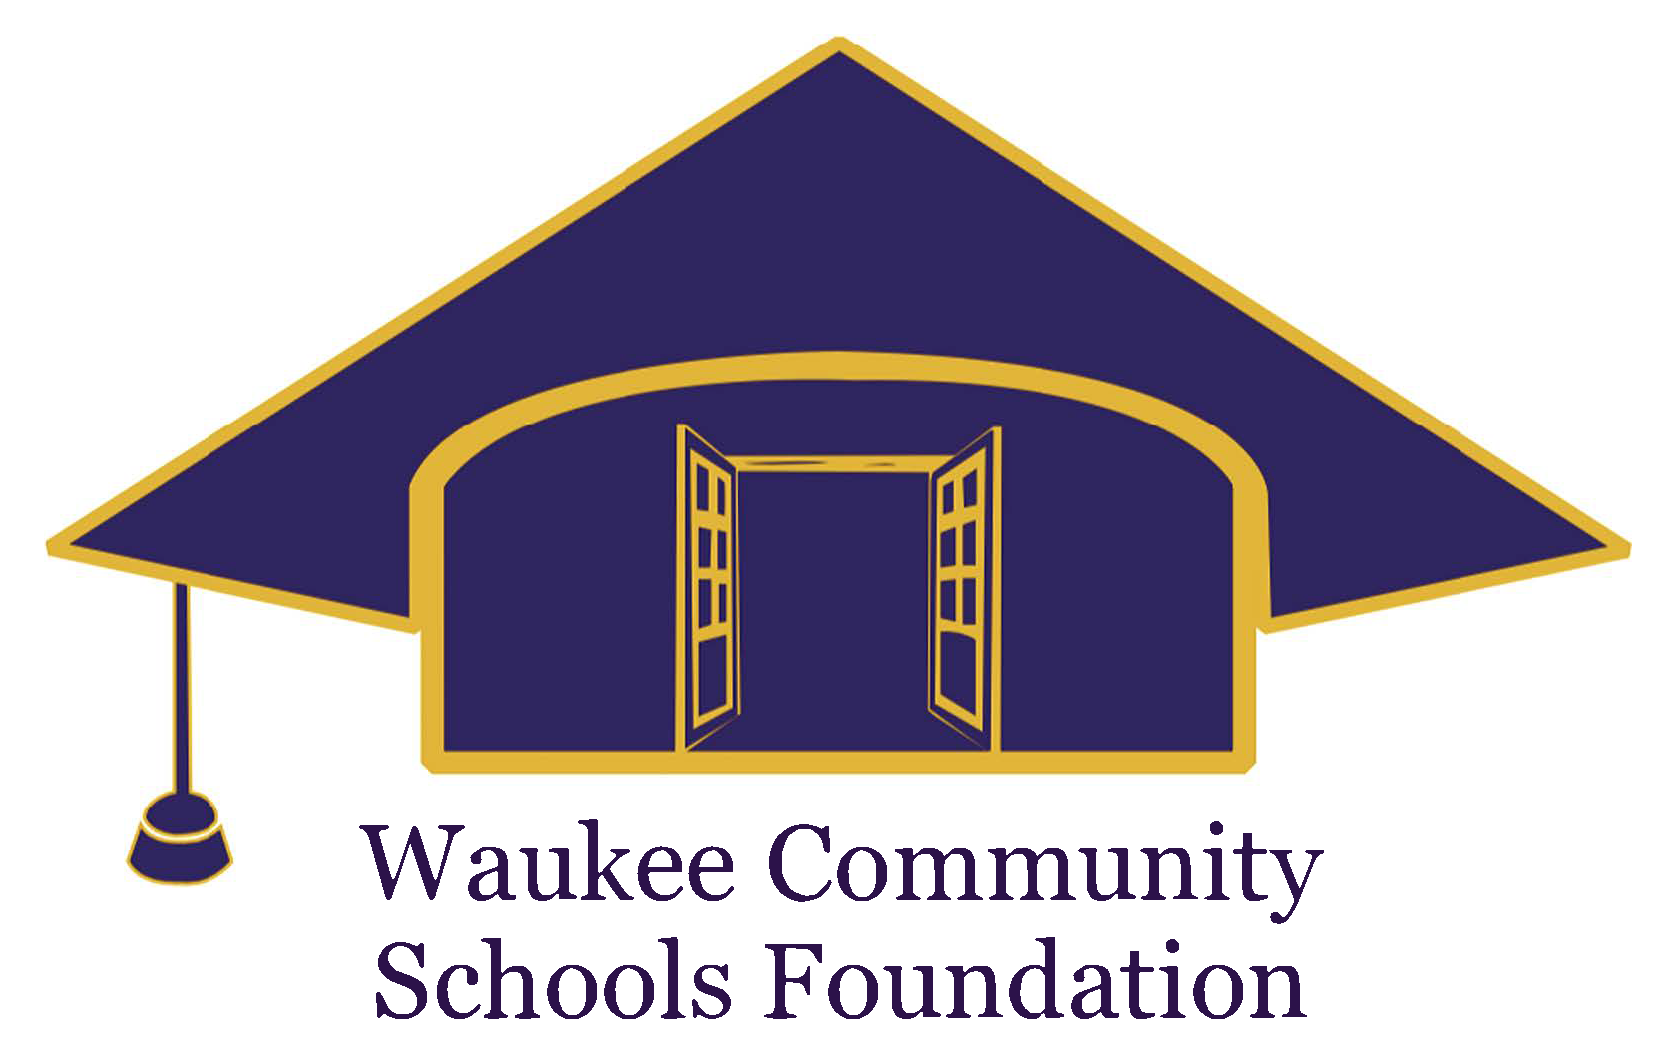 Waukee Community Schools Foundation logo